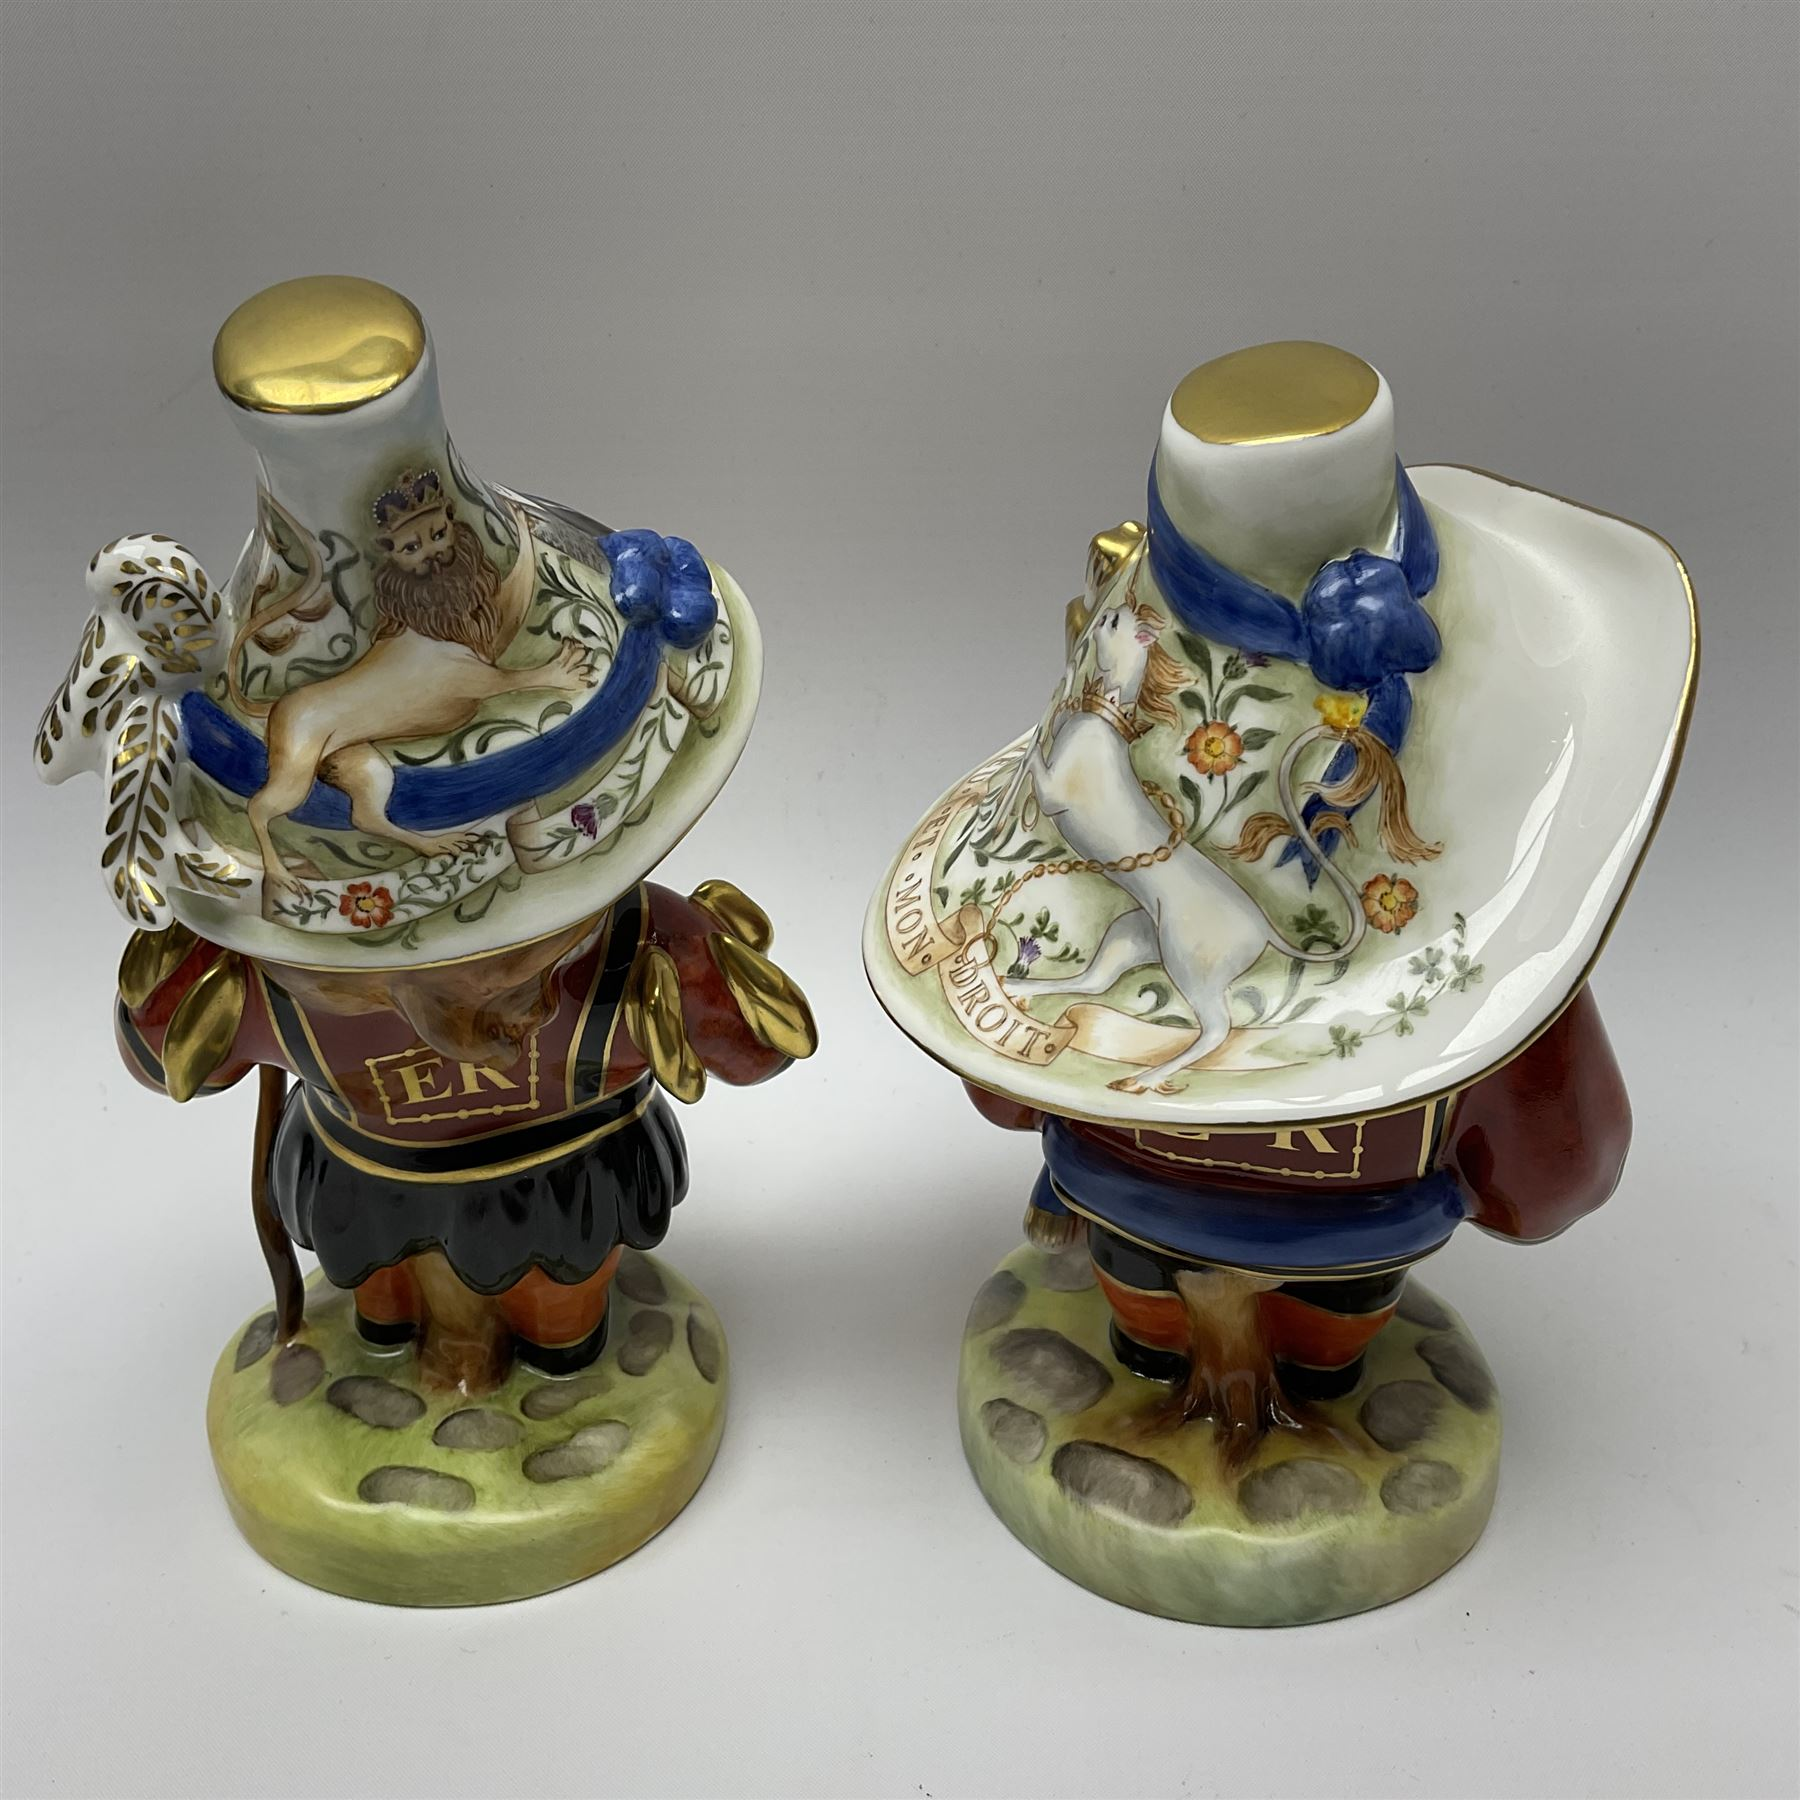 Pair of limited edition Royal Crown Derby Golden Jubilee Mansion House Dwarfs - Image 4 of 4